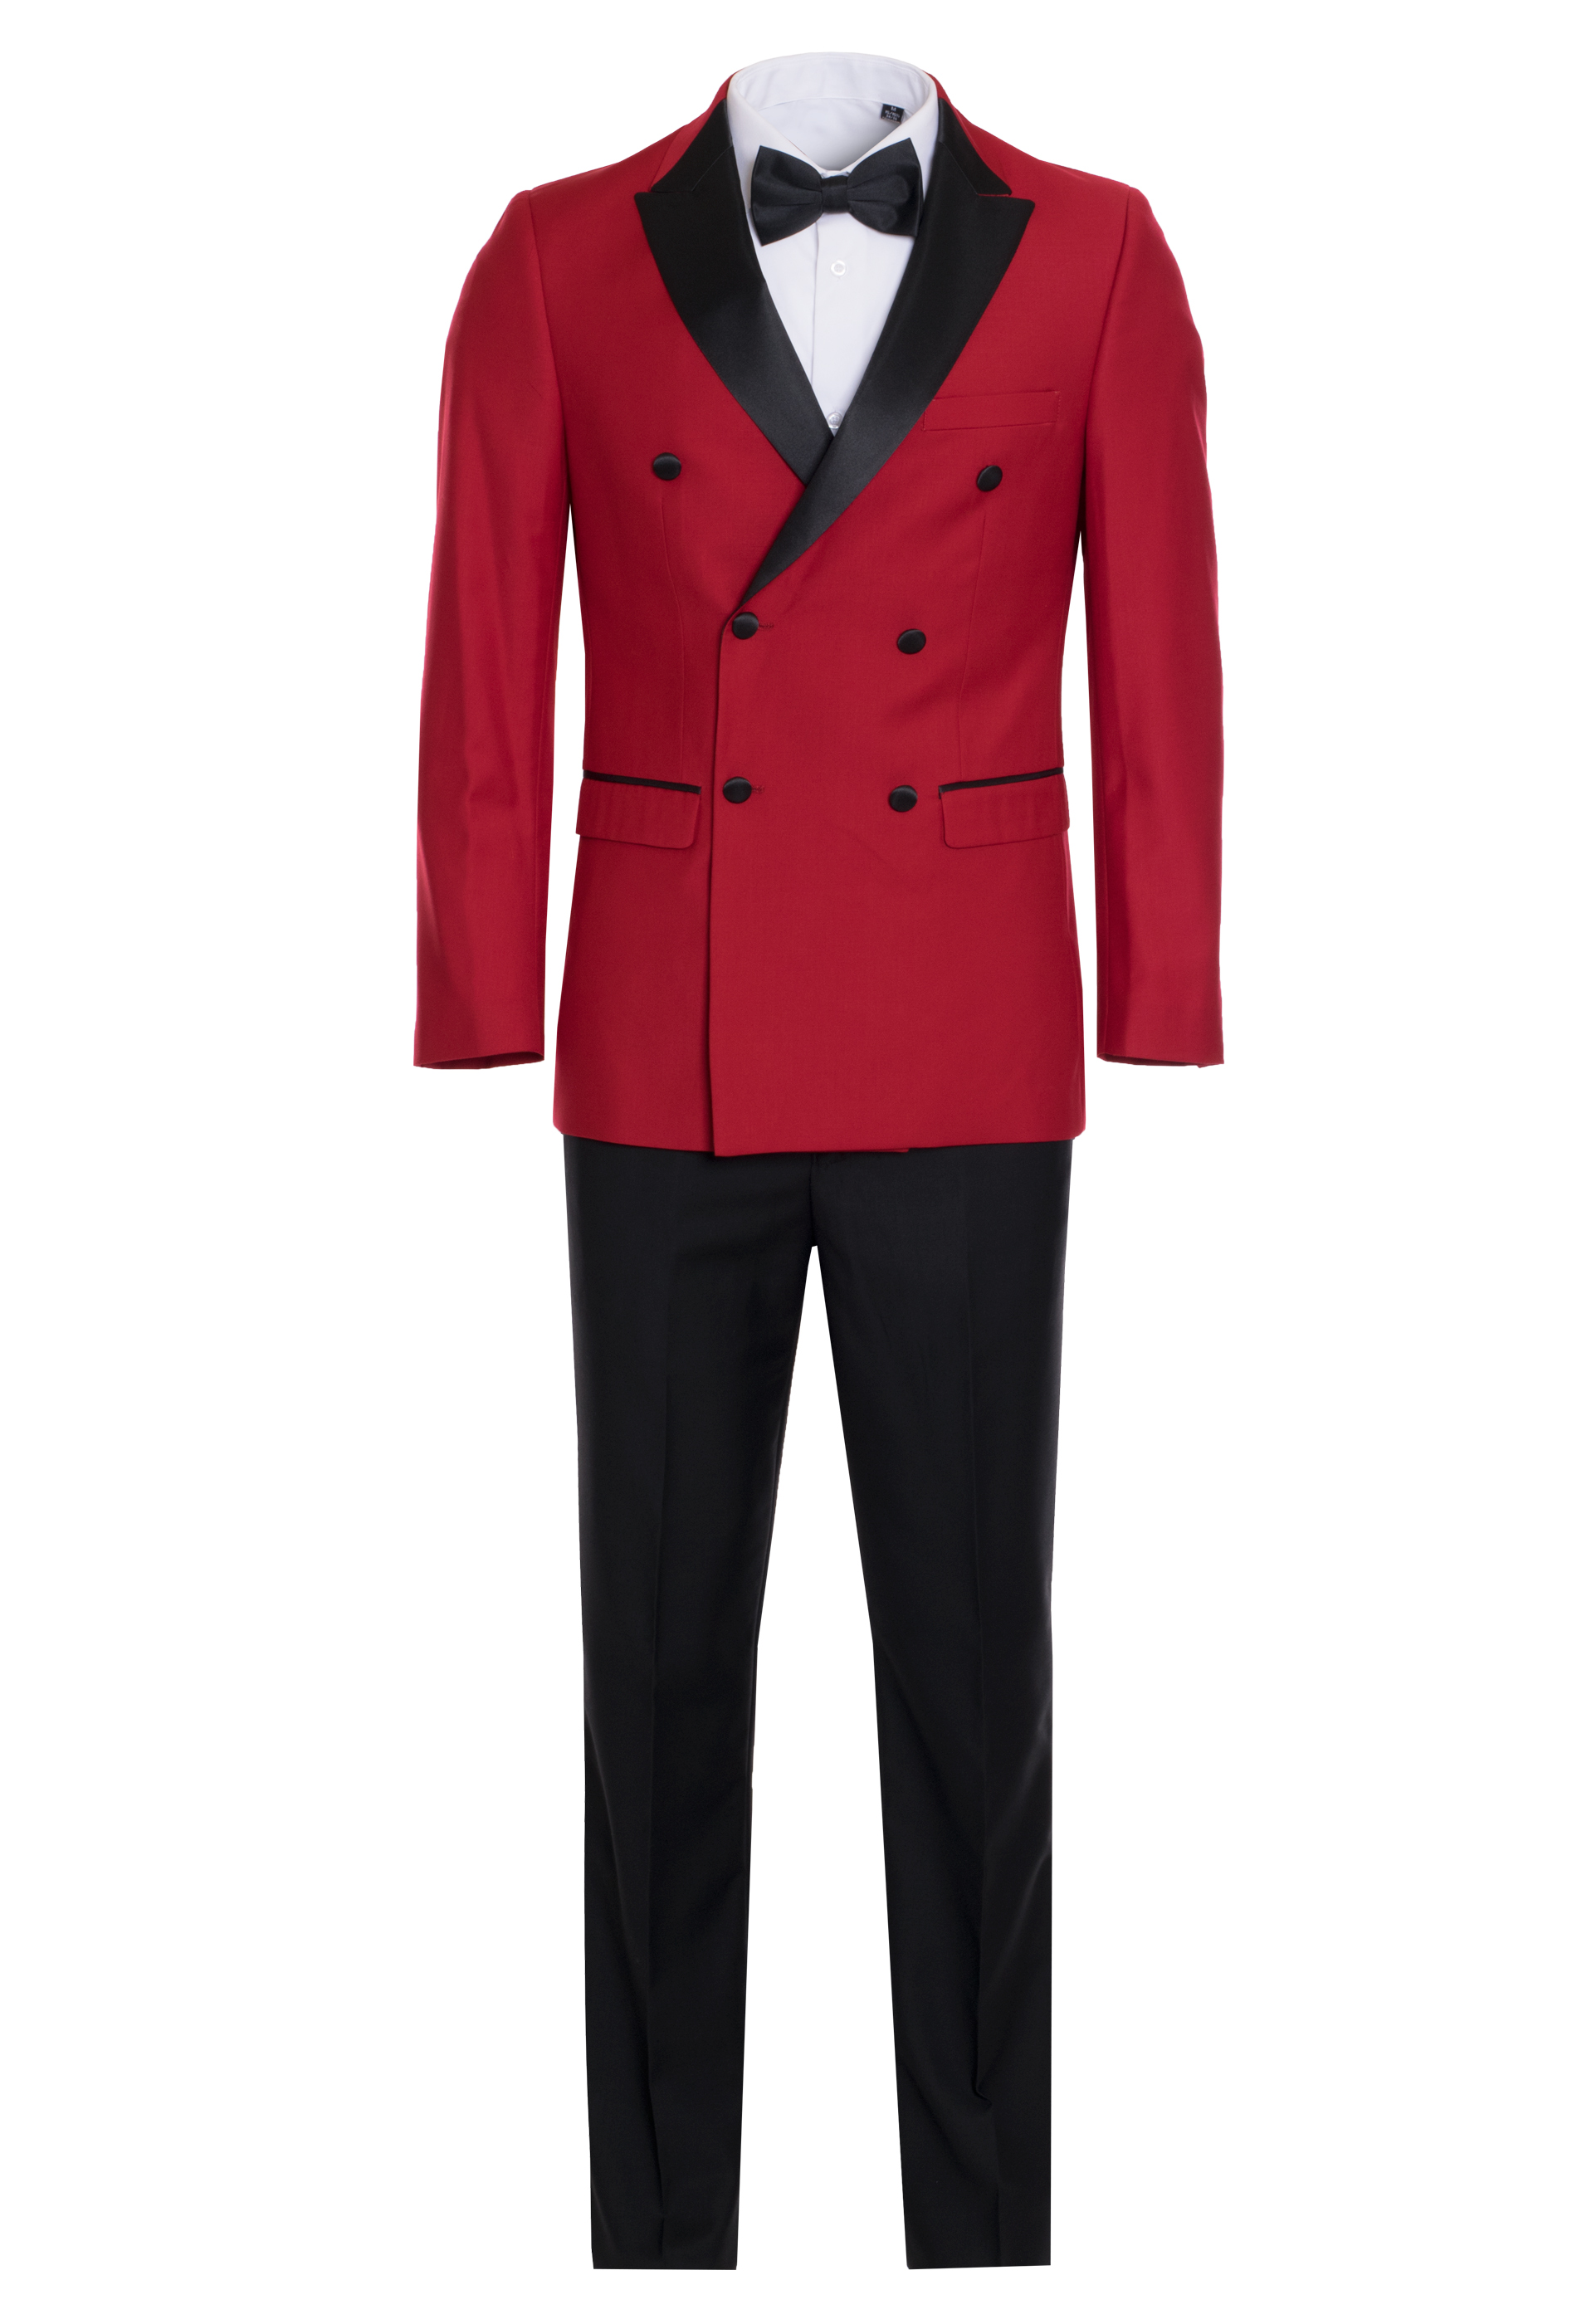 Men's Premium Red and Black Double Breasted Slim Fit Tuxedo - King Formal Wear